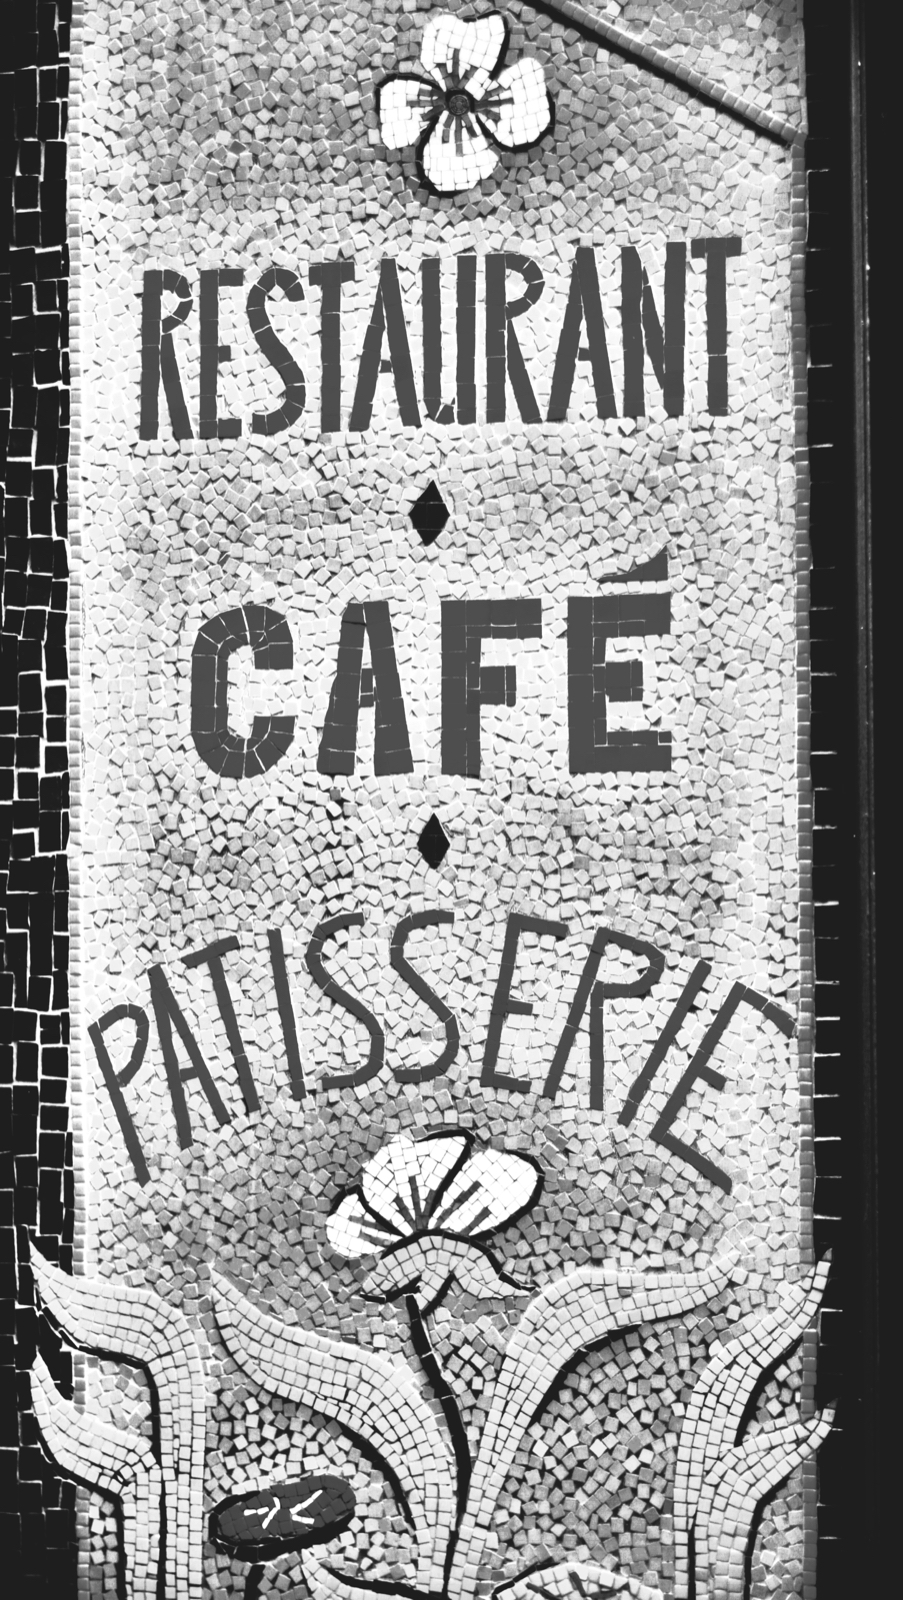 Patisserie sign.jpeg